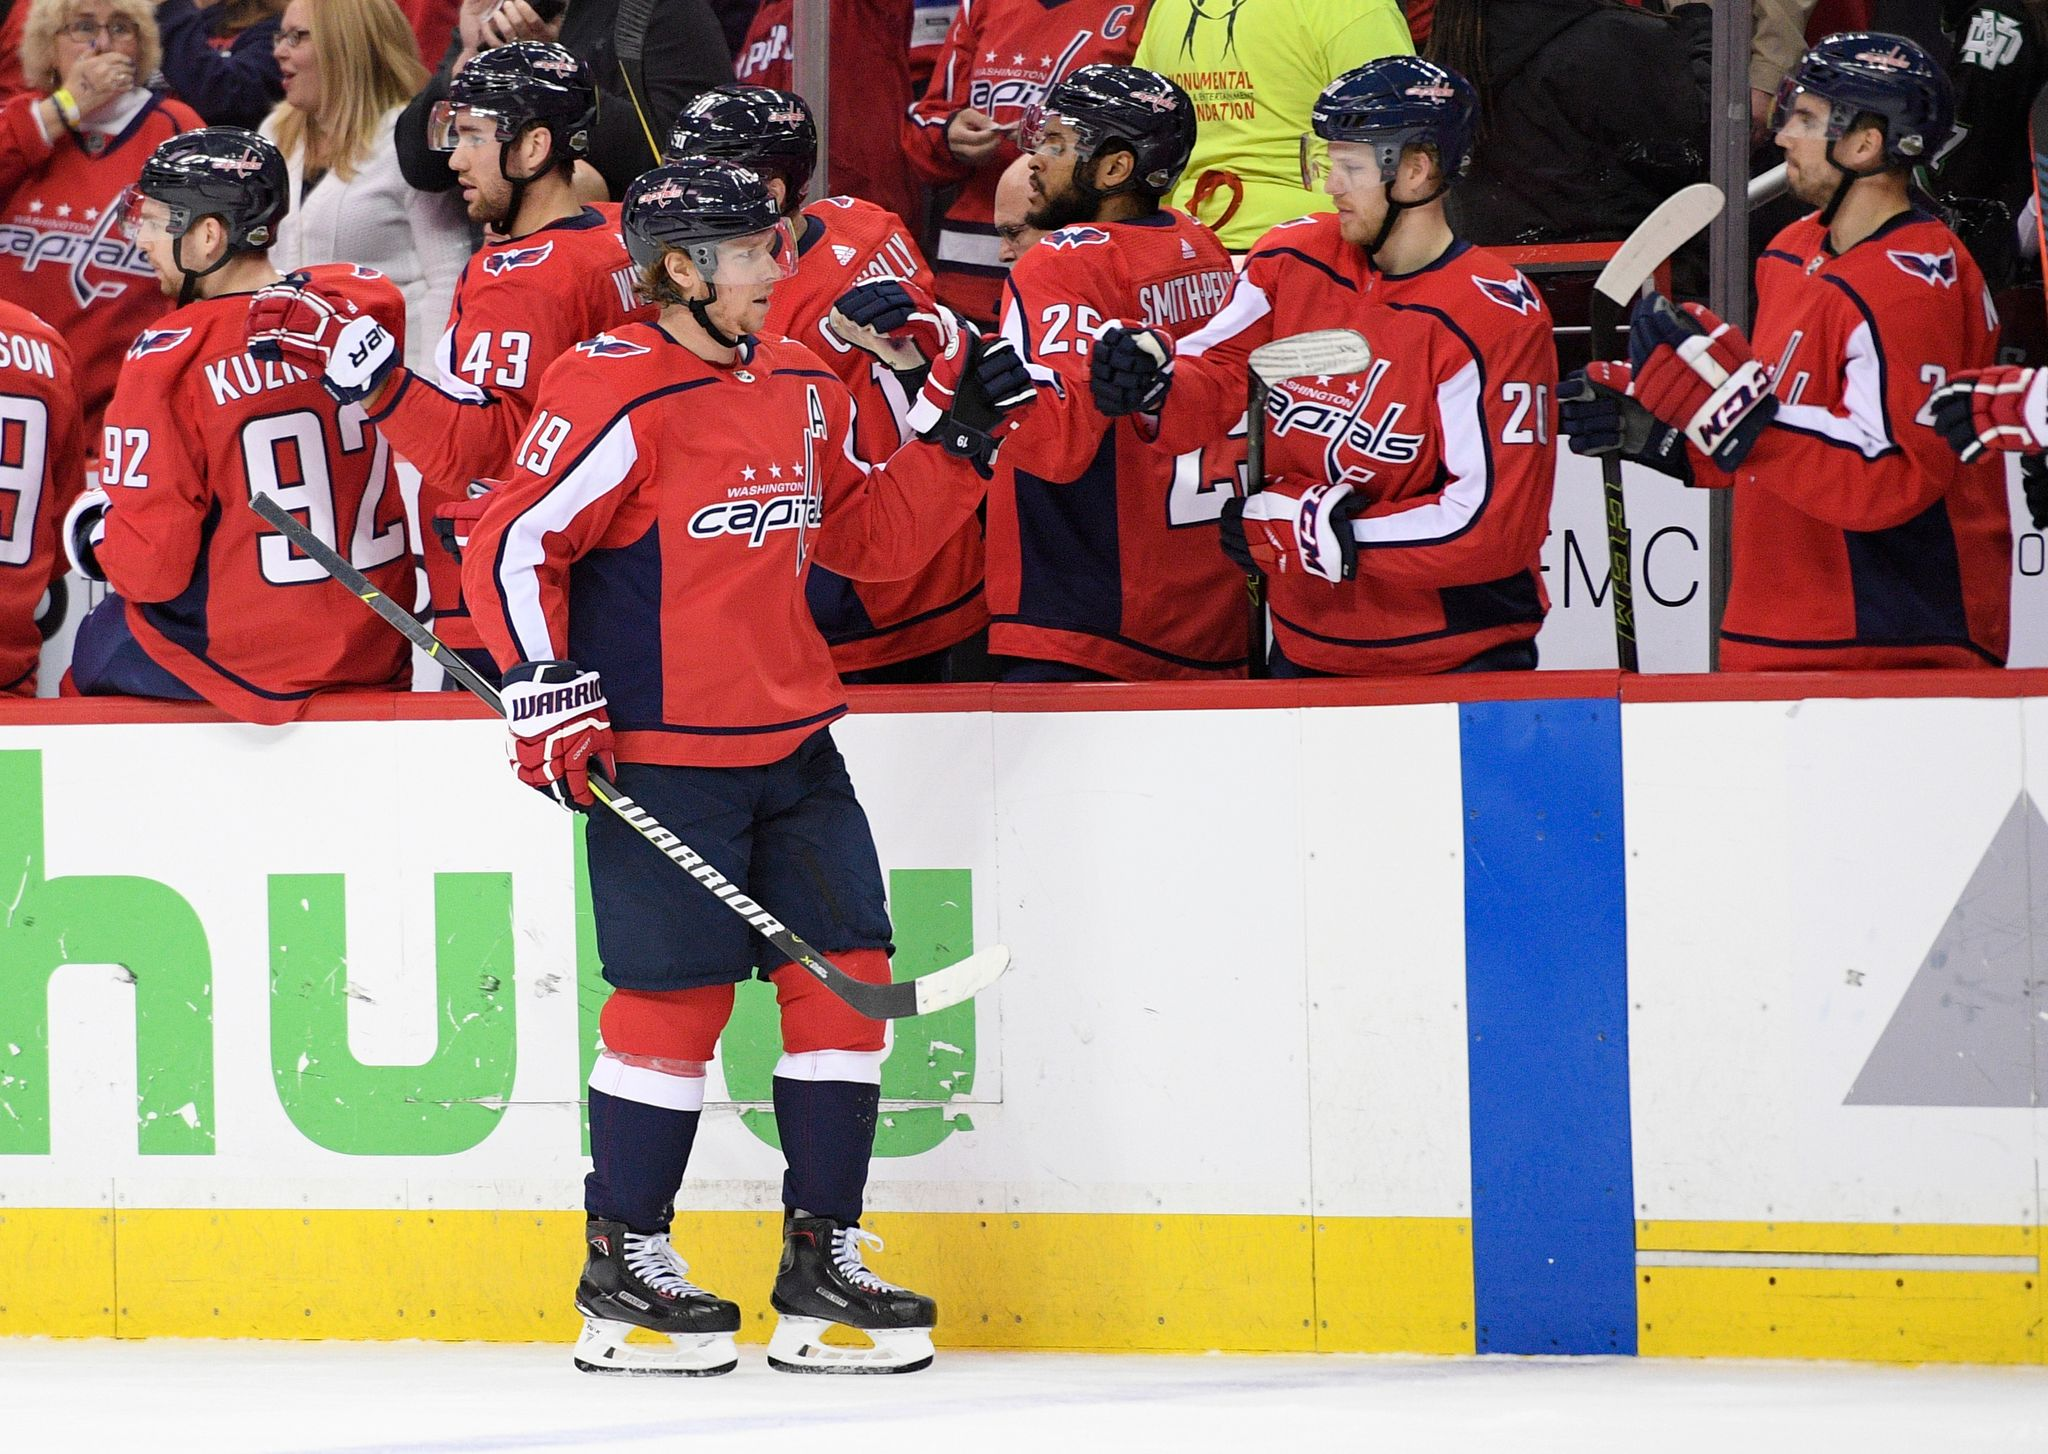 Blue_jackets_capitals_hockey_76254.jpg-8b2cc_s2048x1454